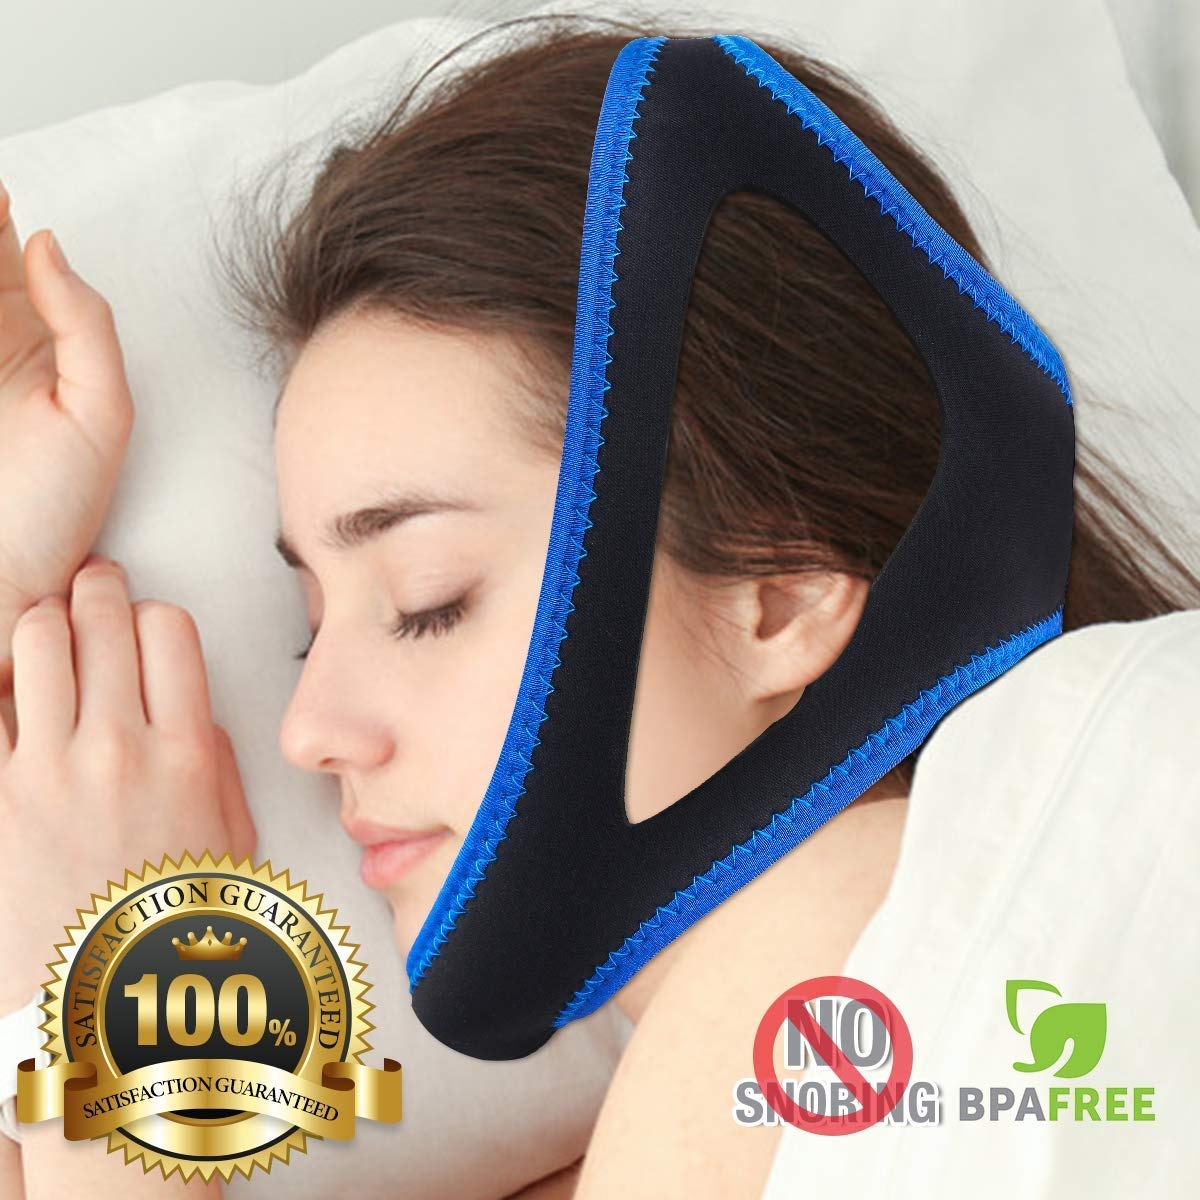 Anti Snoring Adjustable Chin Strap/Sleep Aid Device/Snoring Solution/Stop Snoring For Men And Women Have A Best Night